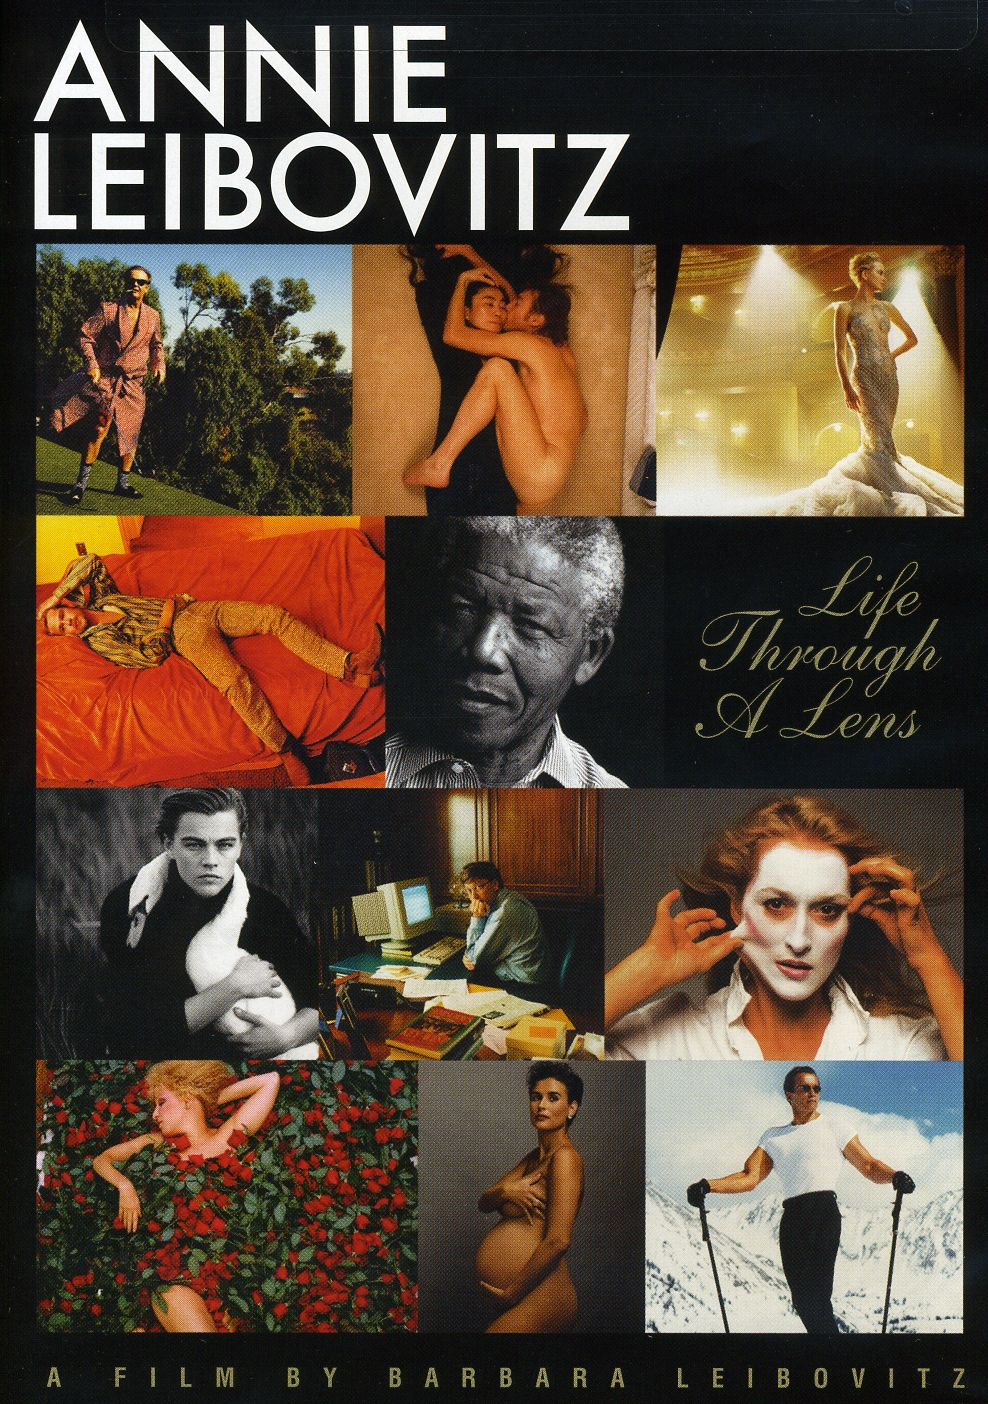 annie leibovitz life through a lens